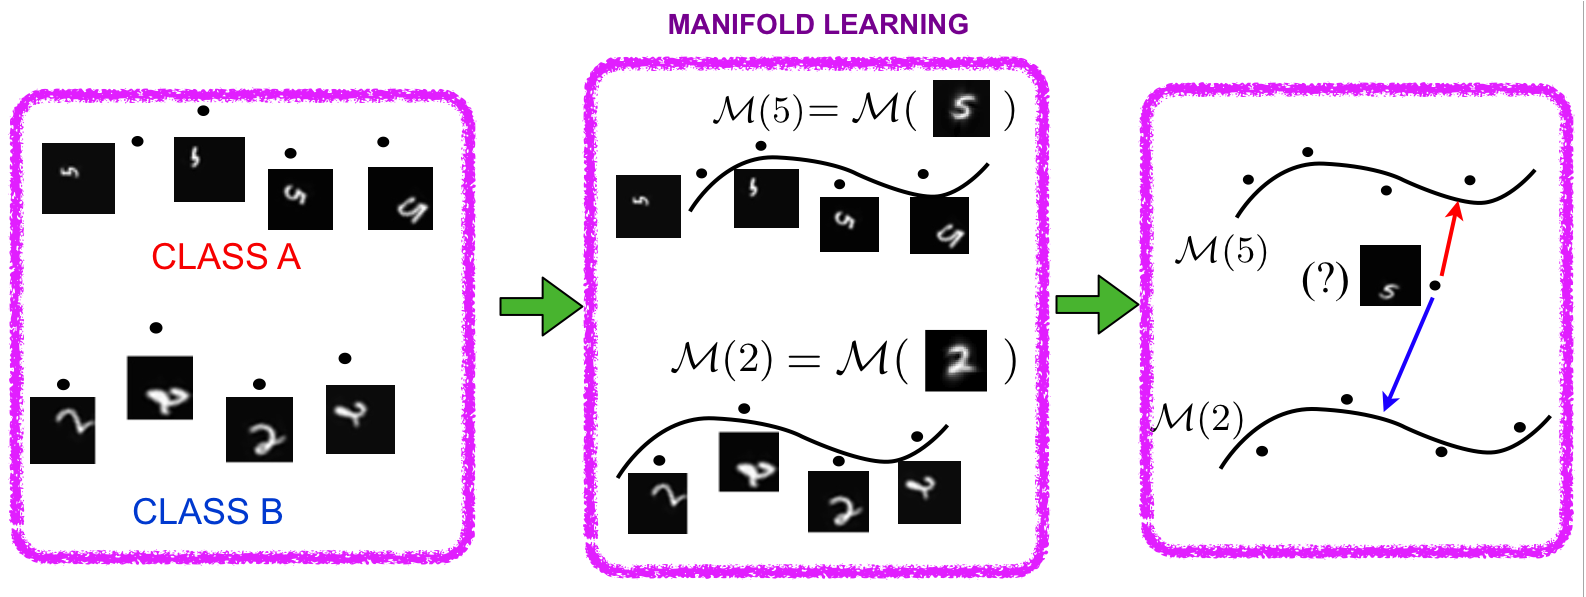 Supervised manifold learning